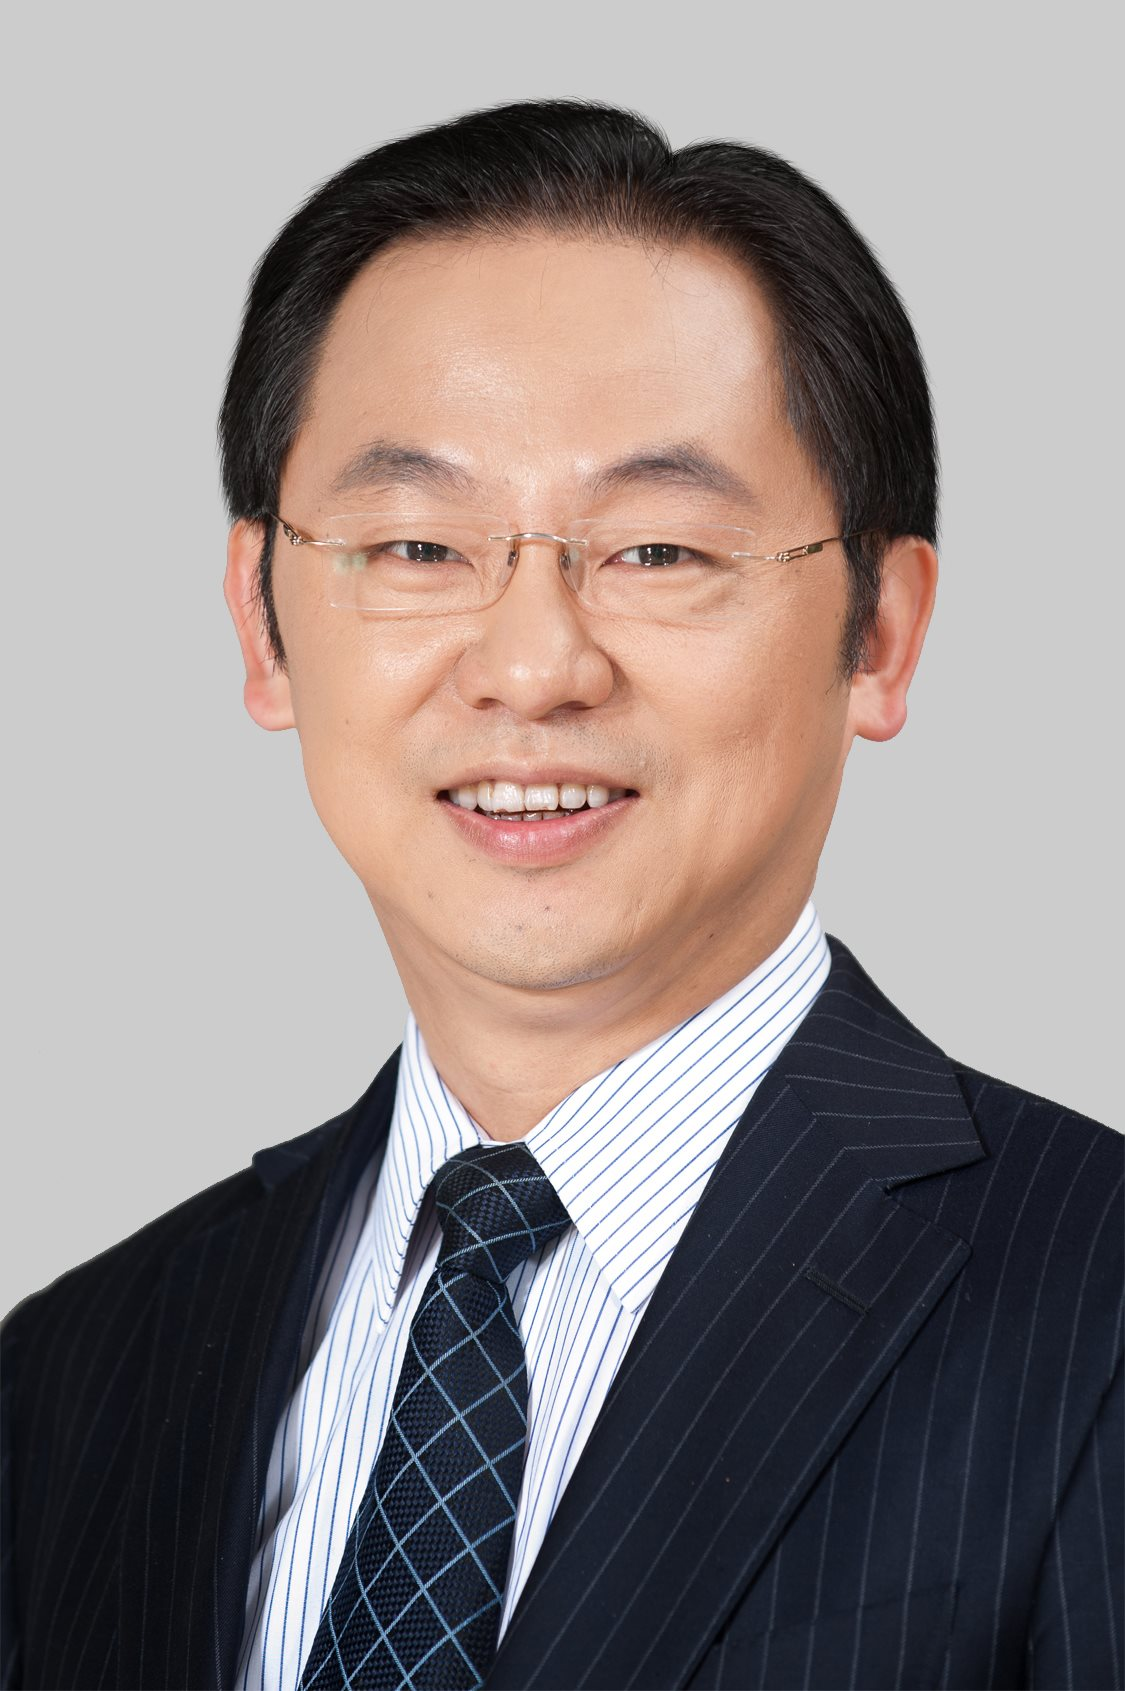 Mr. Ding Yun (Ryan Ding), Executive Director, President of the Carrier BG